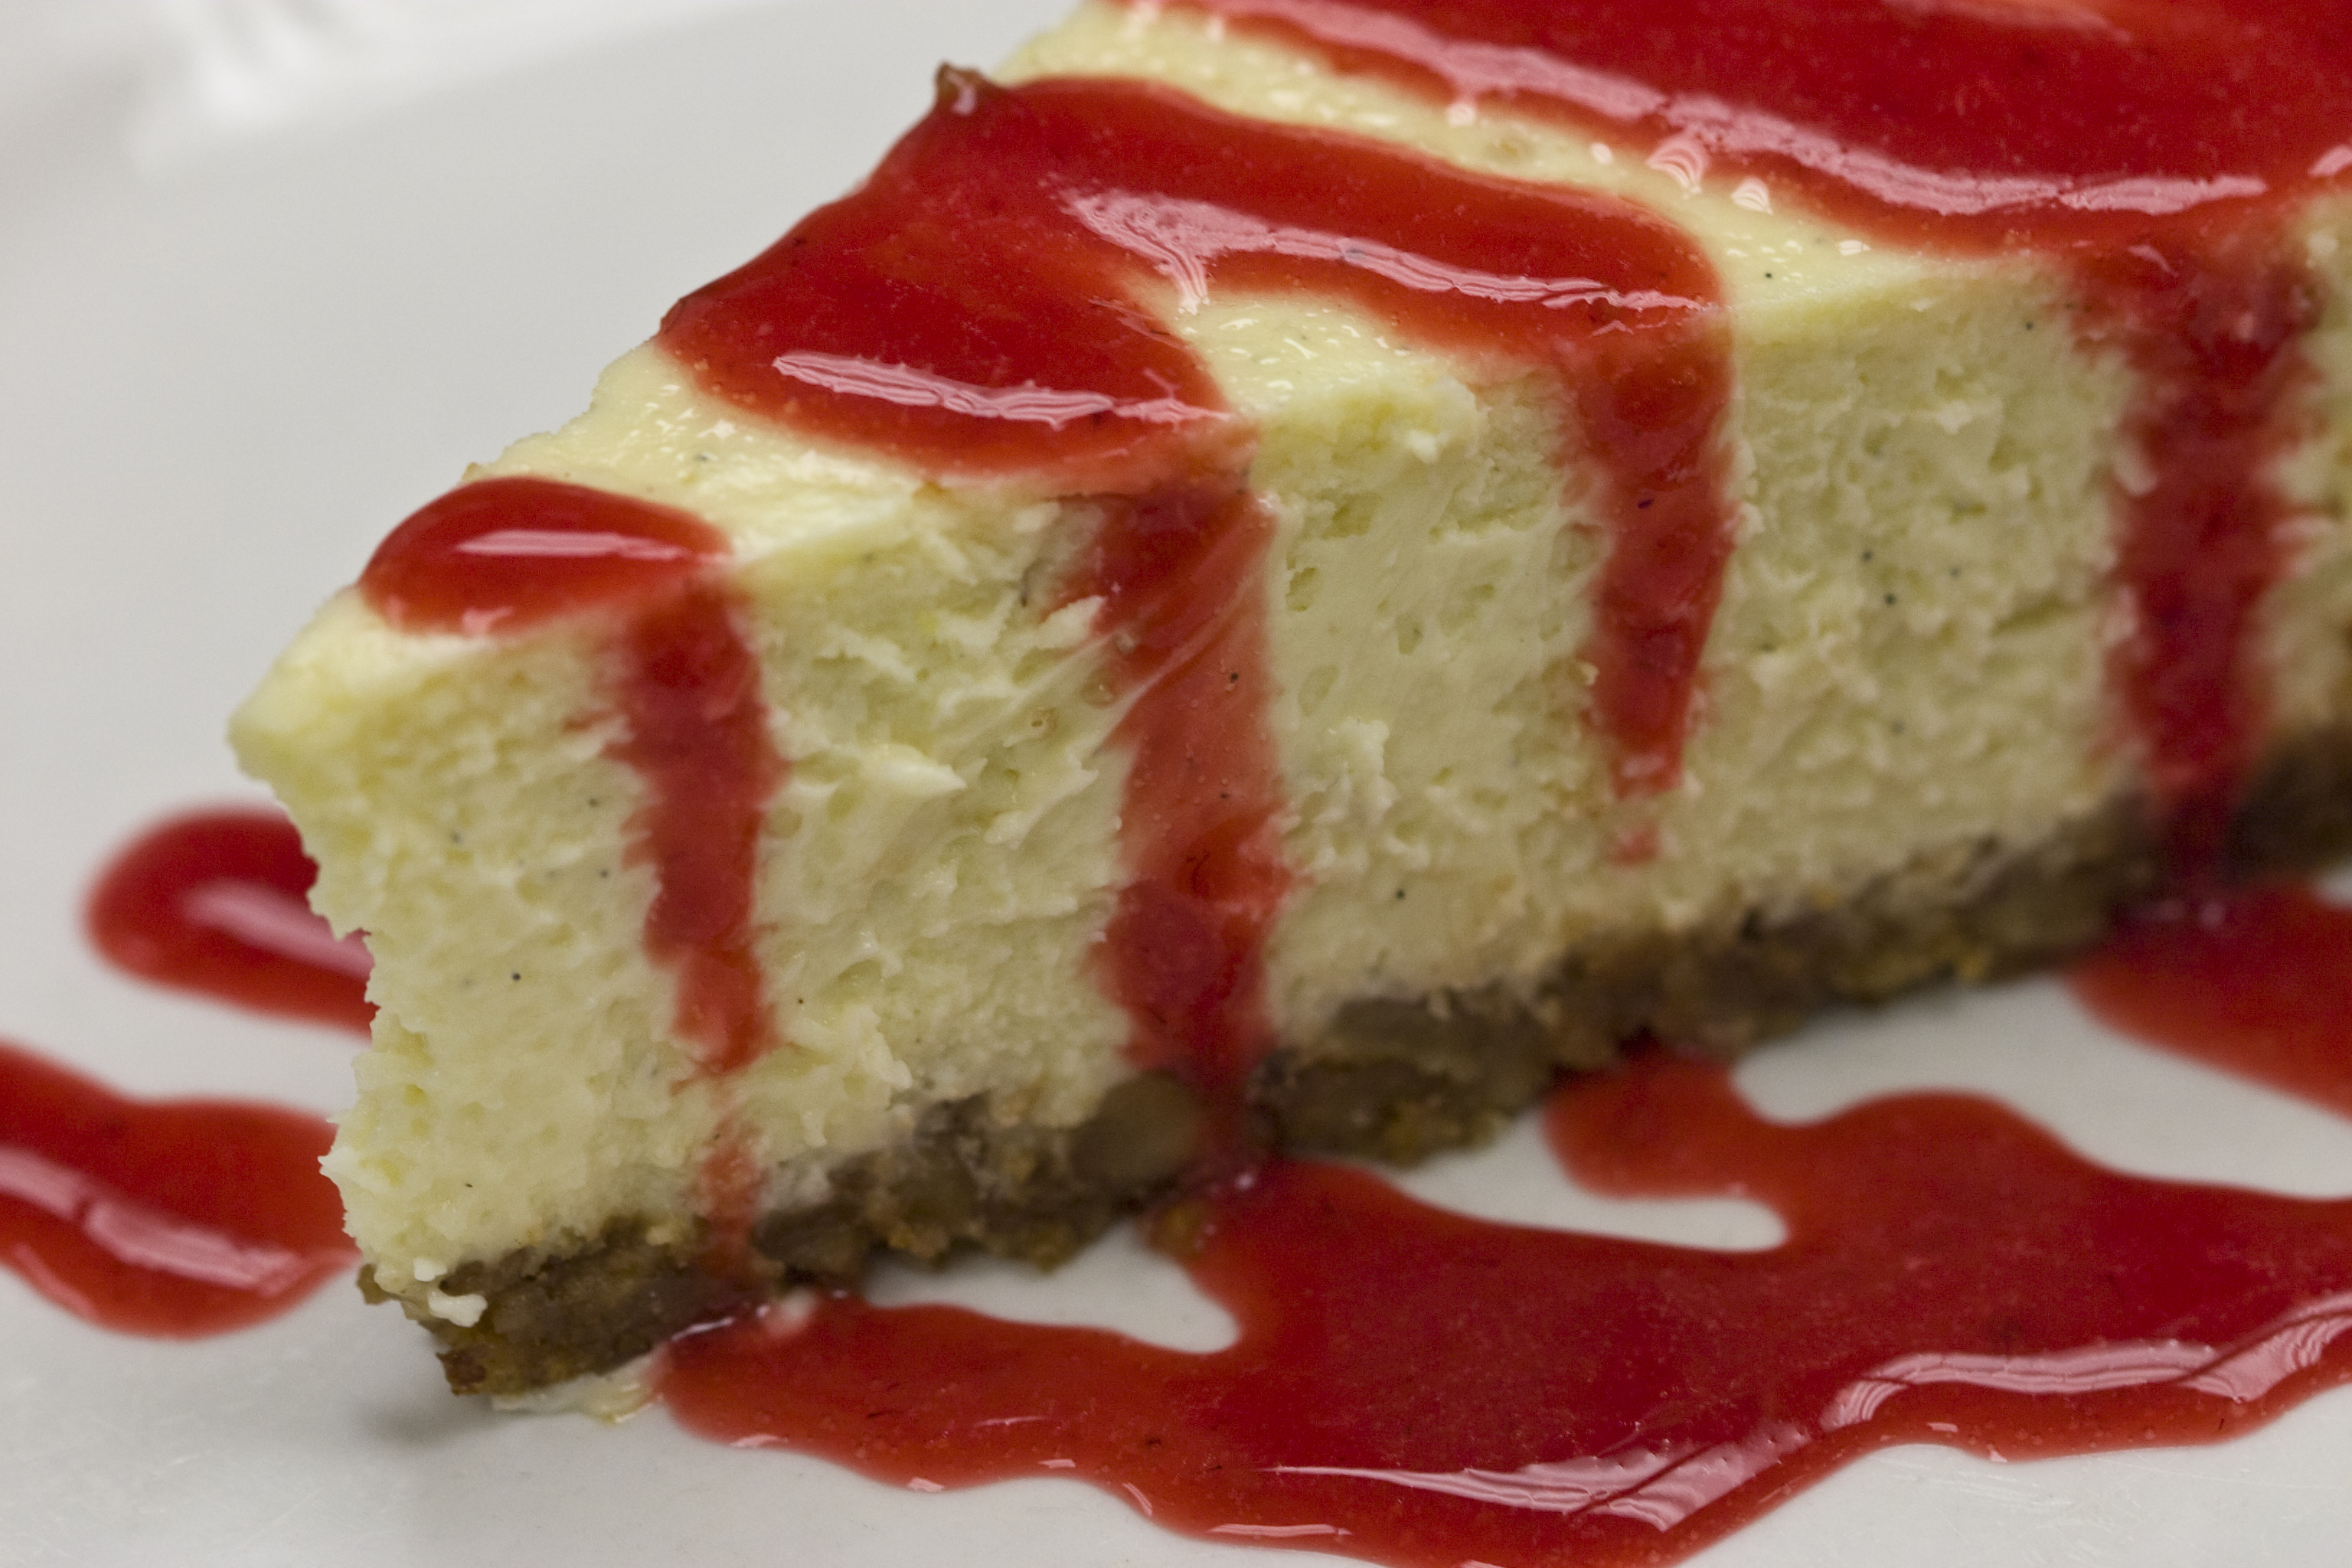 Description Mondays at Il Forno - Cheesecake with strawberry sauce.jpg